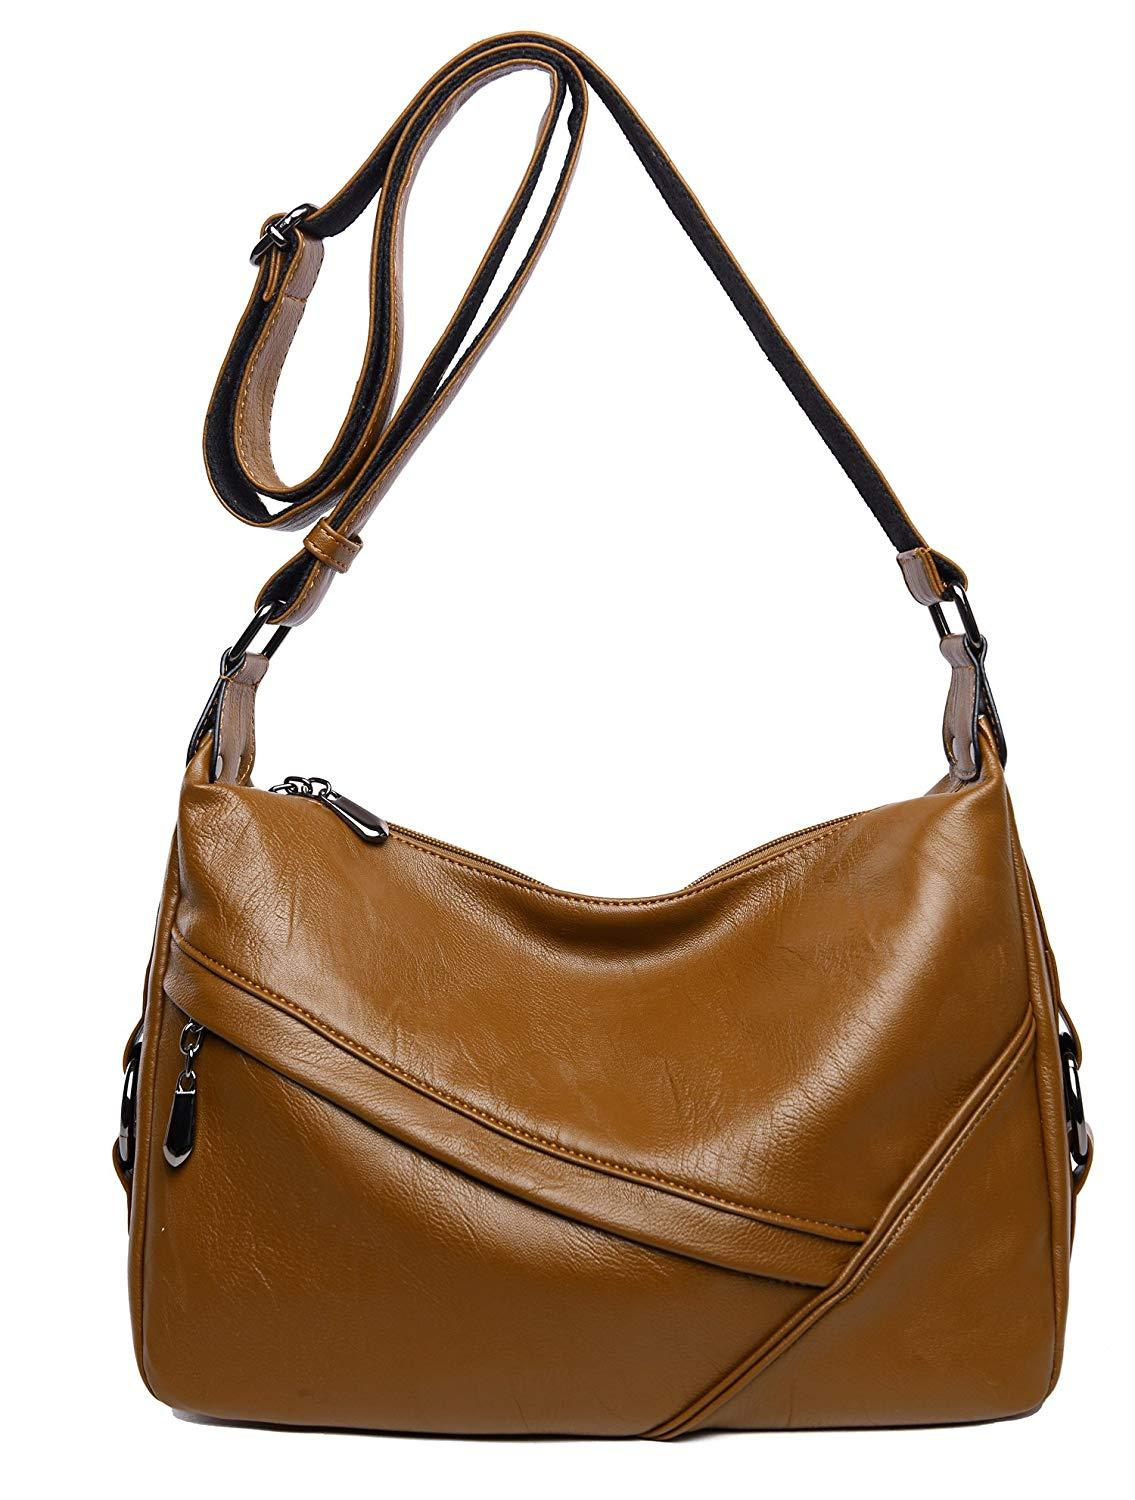 Image result for A sling shoulder bag with two sides open slots